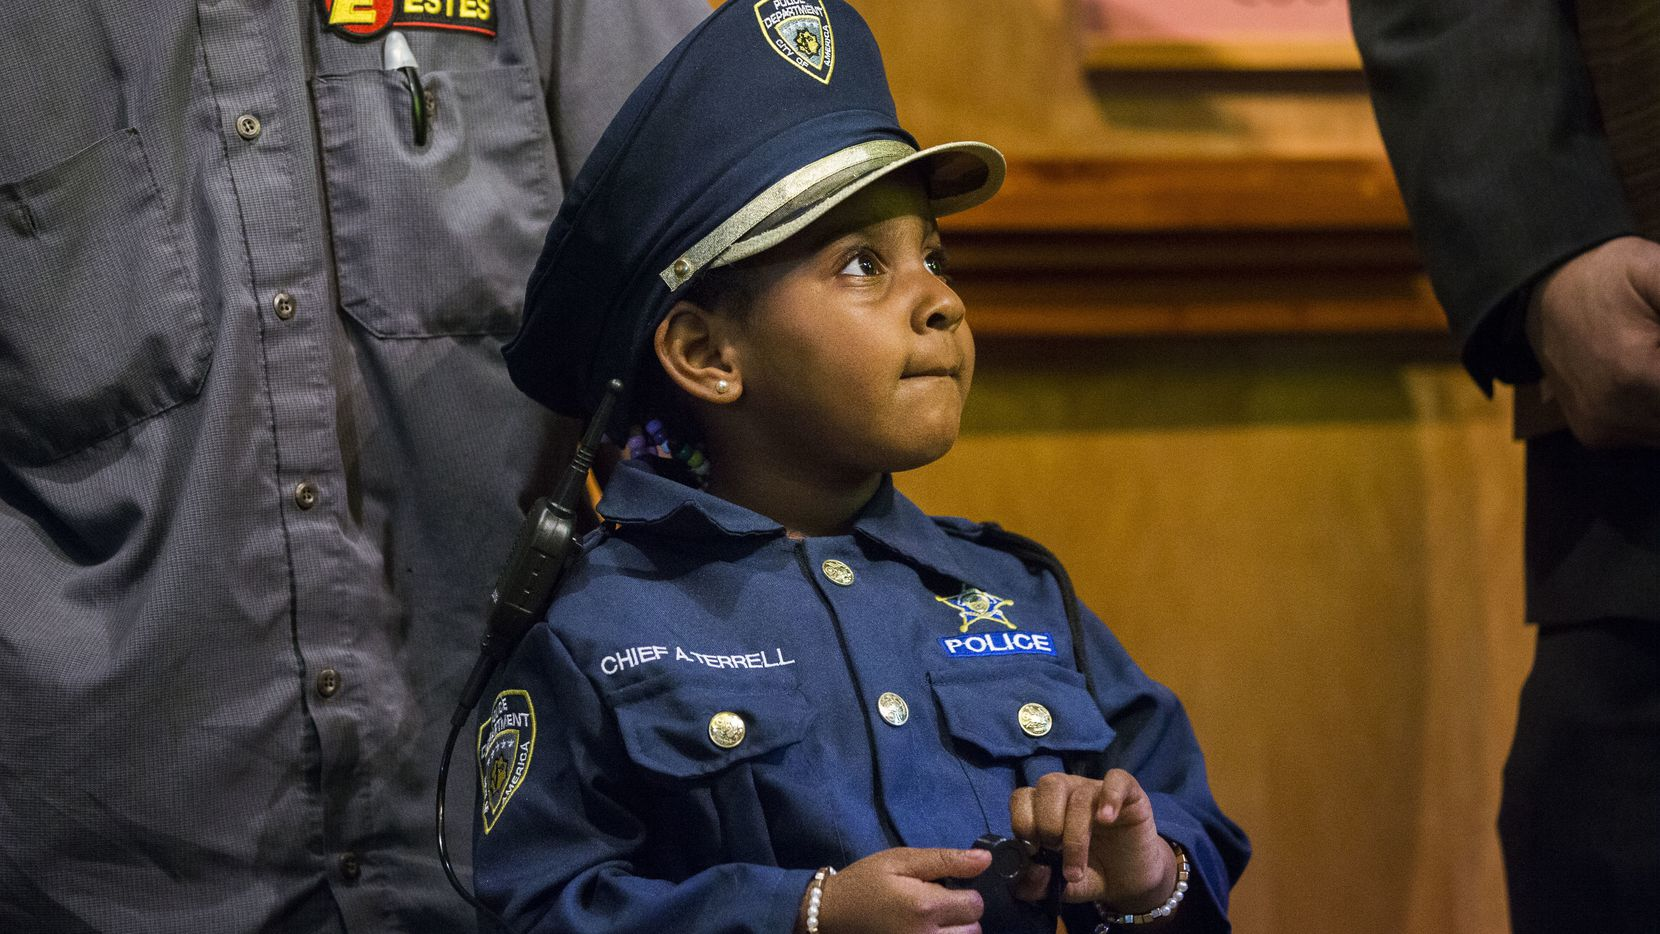 """Four-year-old Ah'Maya Terrell stands in front of her grandfather Derek Hollands as she is designated as the Cedar Hill Police Department's  """"chief for a day"""" during a City Council meeting in Cedar Hill on March 26, 2019."""